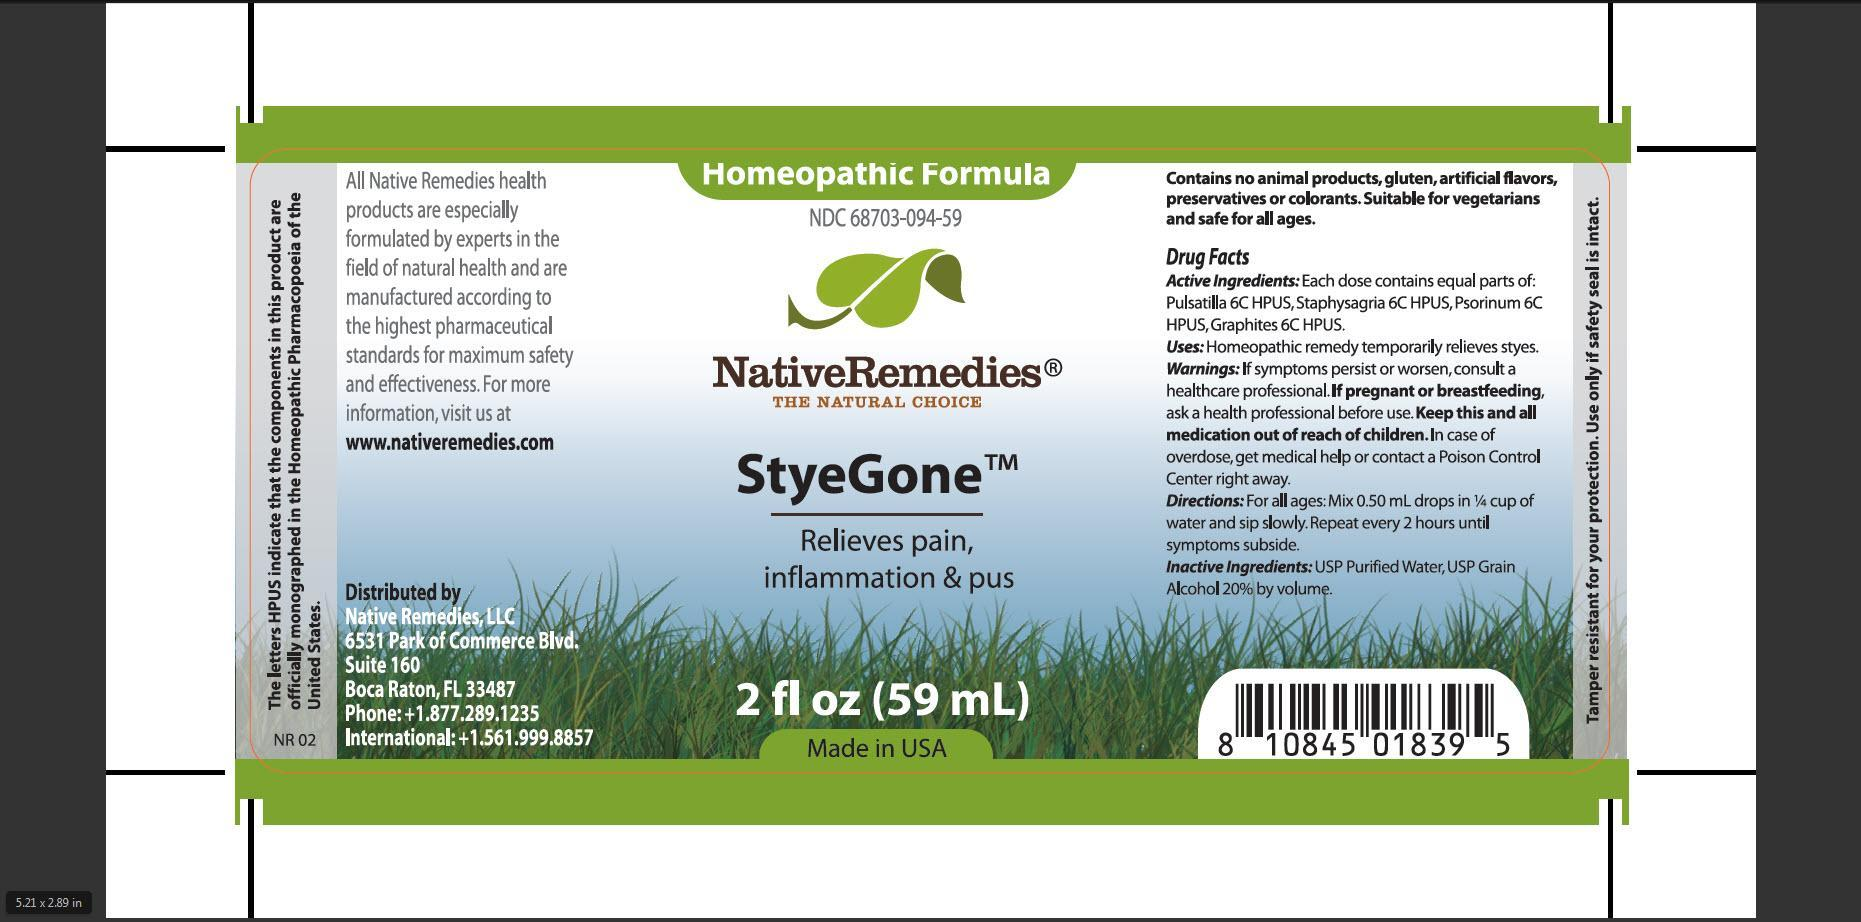 Styegone (Pulsatilla, Staphysagria, Psorinum, Graphites) Tincture [Native Remedies, Llc]